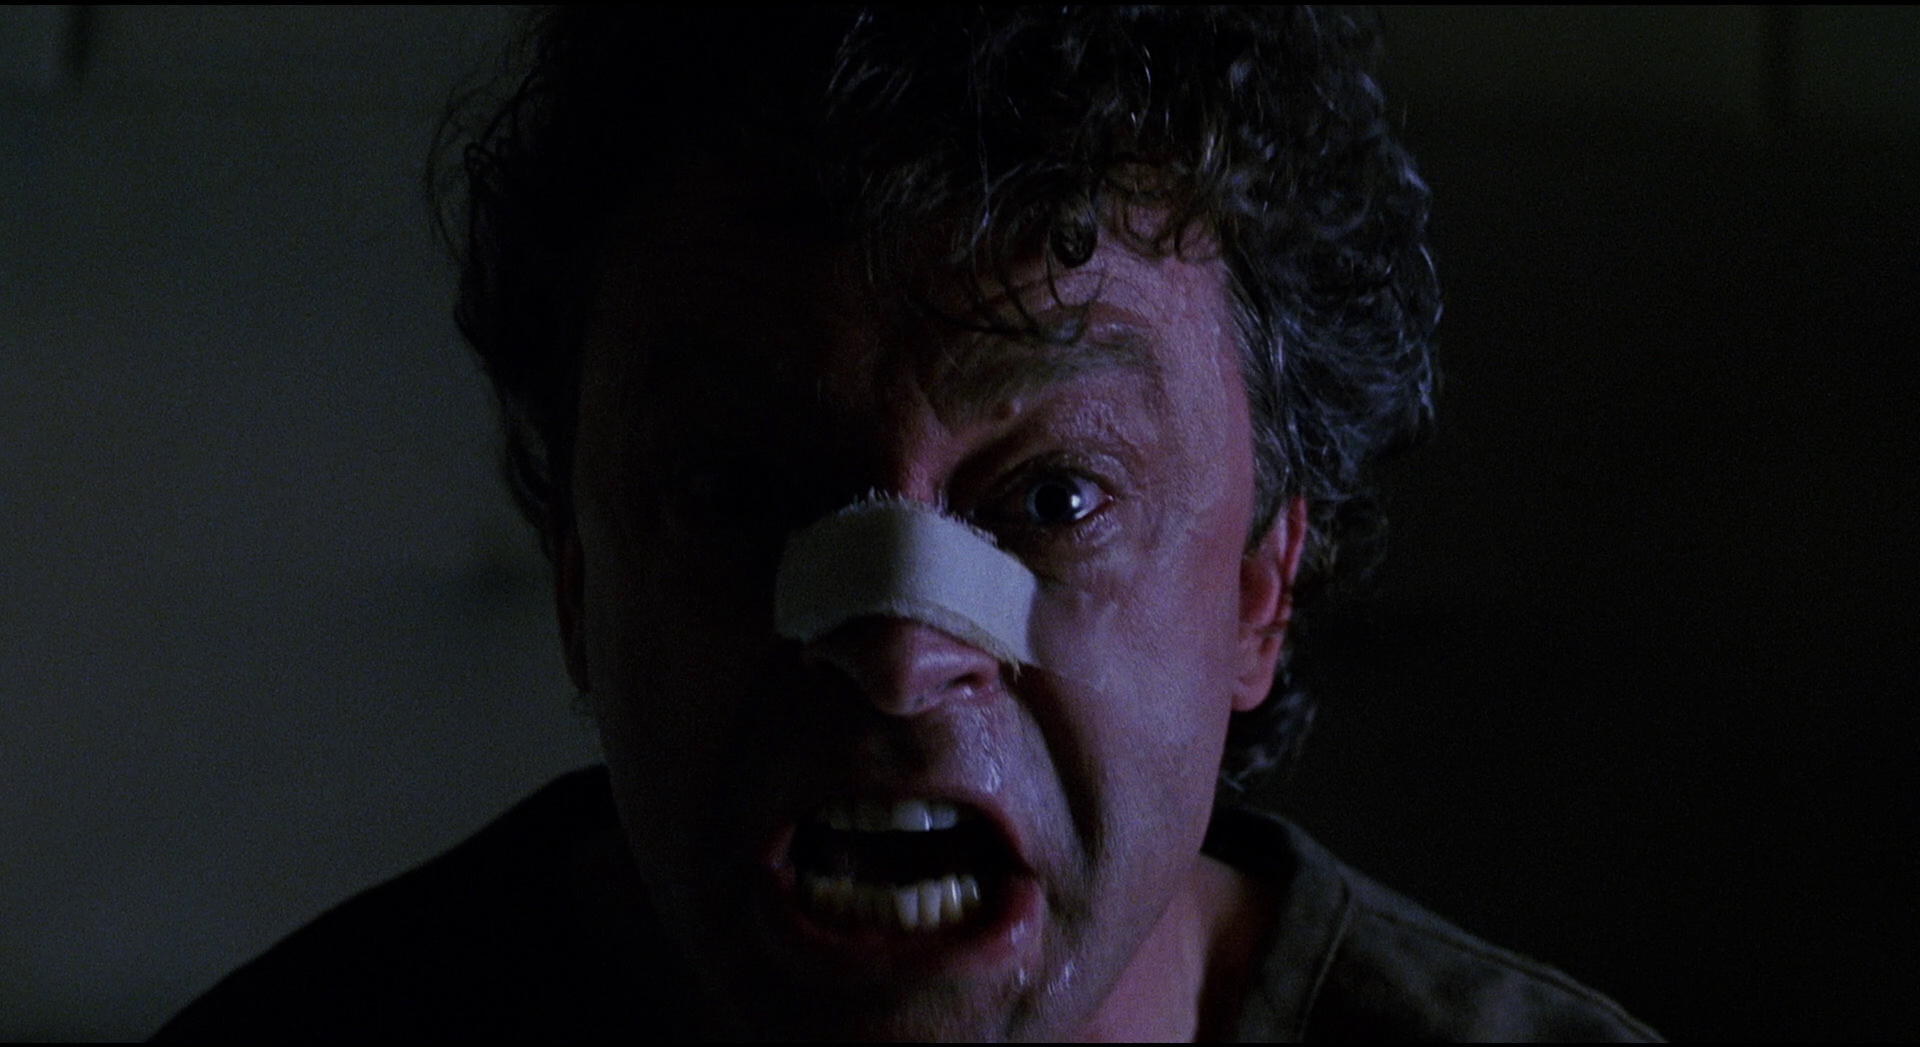 Brad Dourif as the imprisoned Gemini Killer in The Exorcist III (1990)